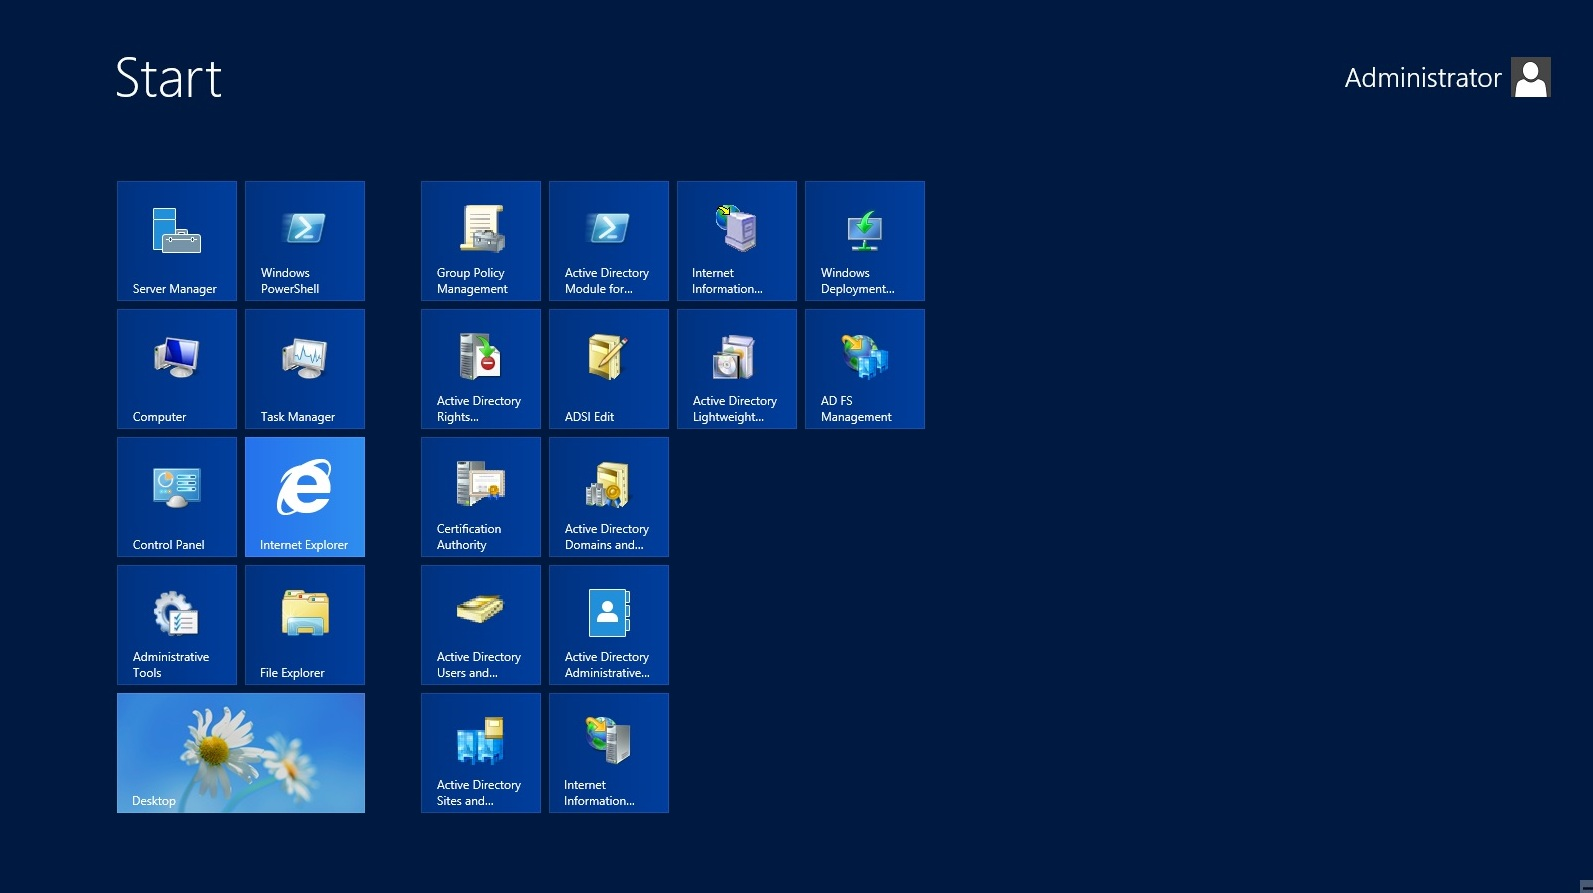 Installing and Configuring Windows Server 2012 R2